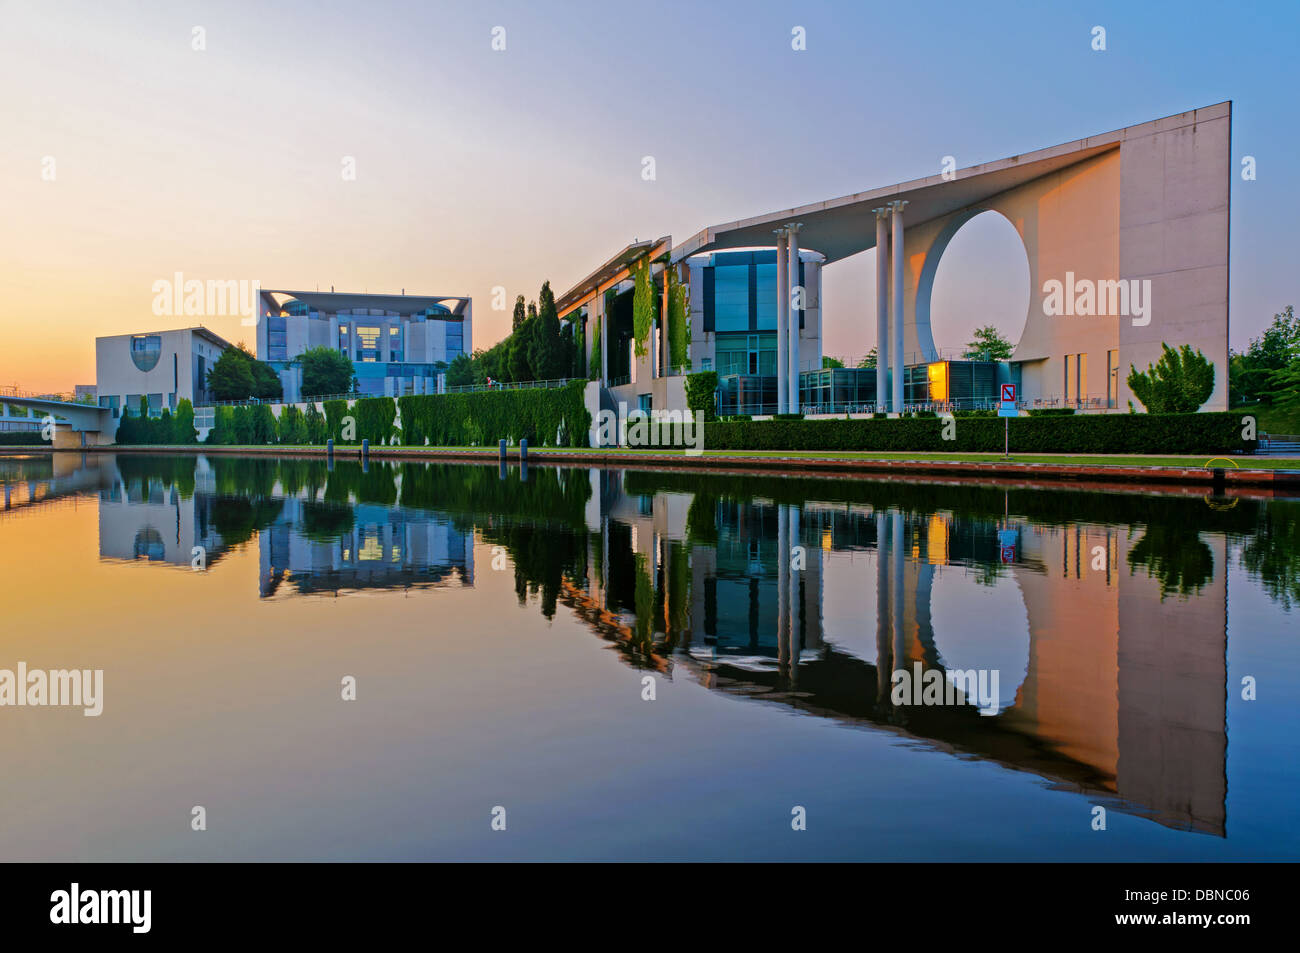 Bundeskanzleramt in Berlin, Germany, with reflection in Spree river at sunrise Stock Photo